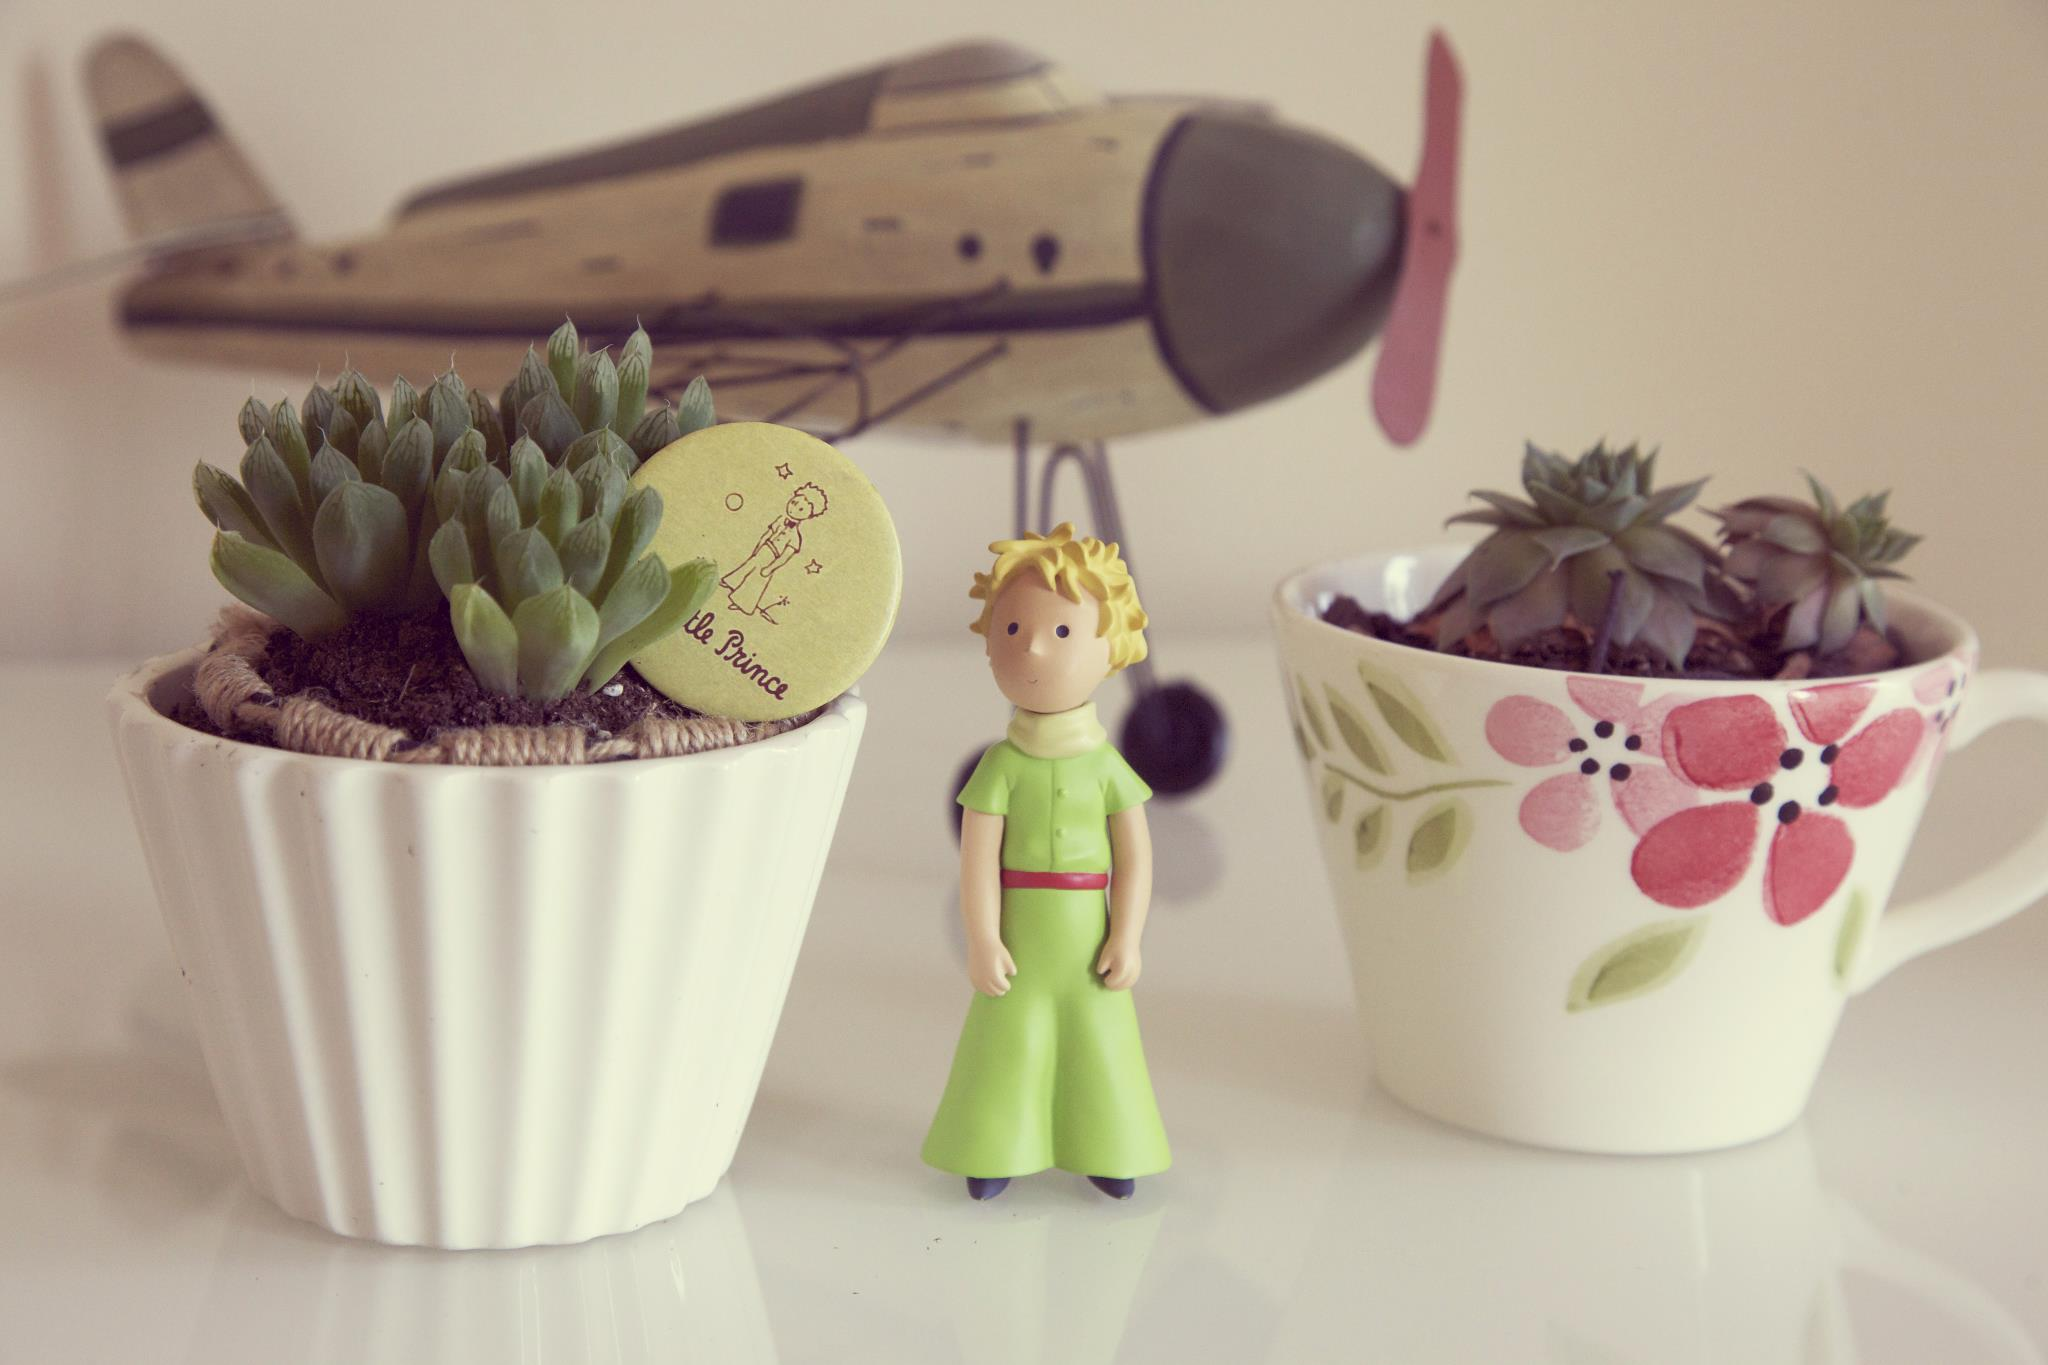 'The little prince' by Antoine de Saint-Exupéry has beena very influential book to me.